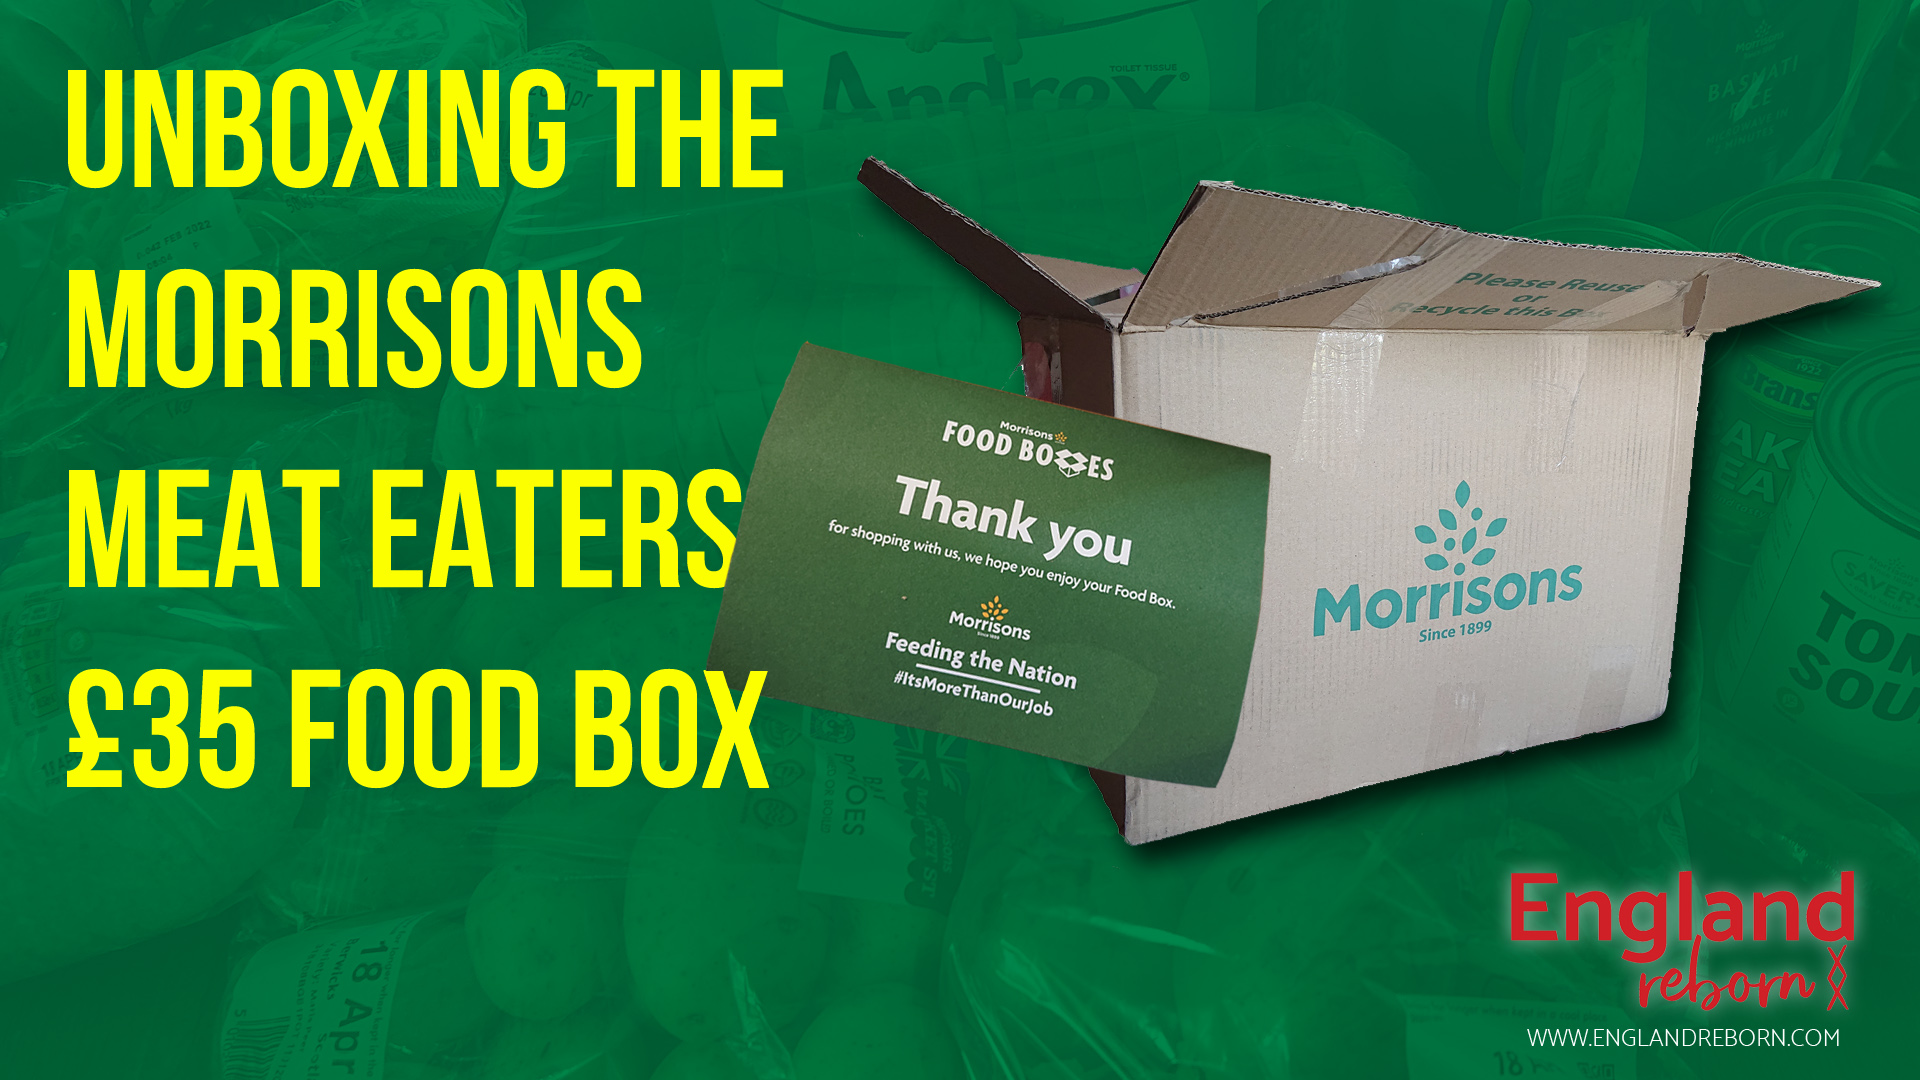 Unboxing the Morrisons Food Box